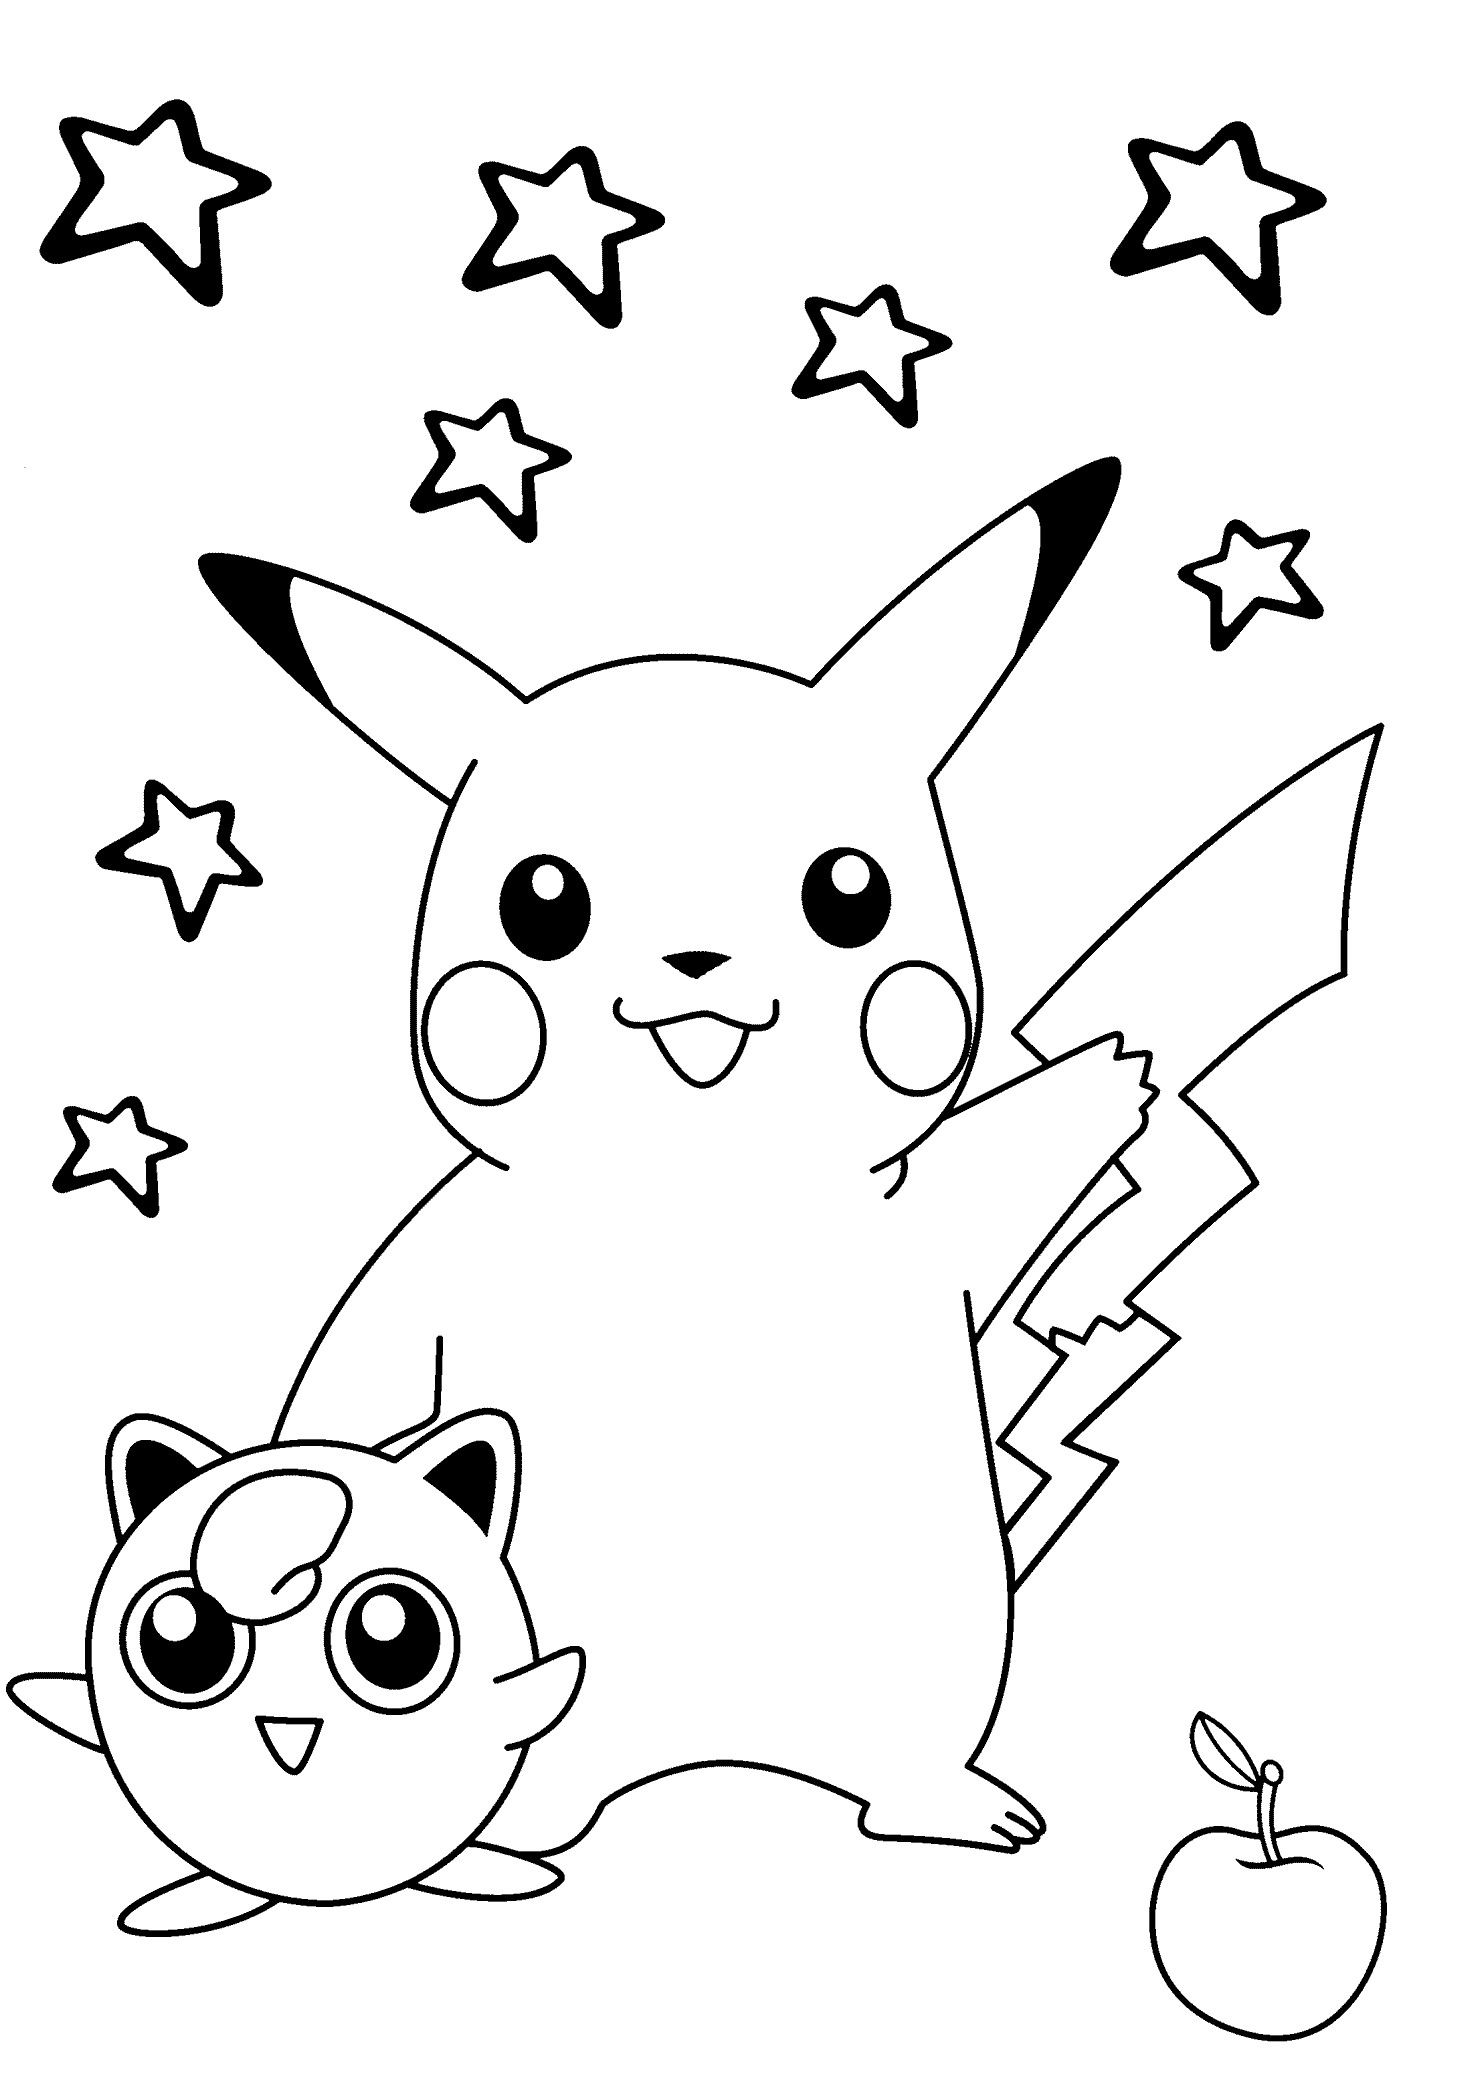 Free Pokemon Coloring Book From The Thousands Of